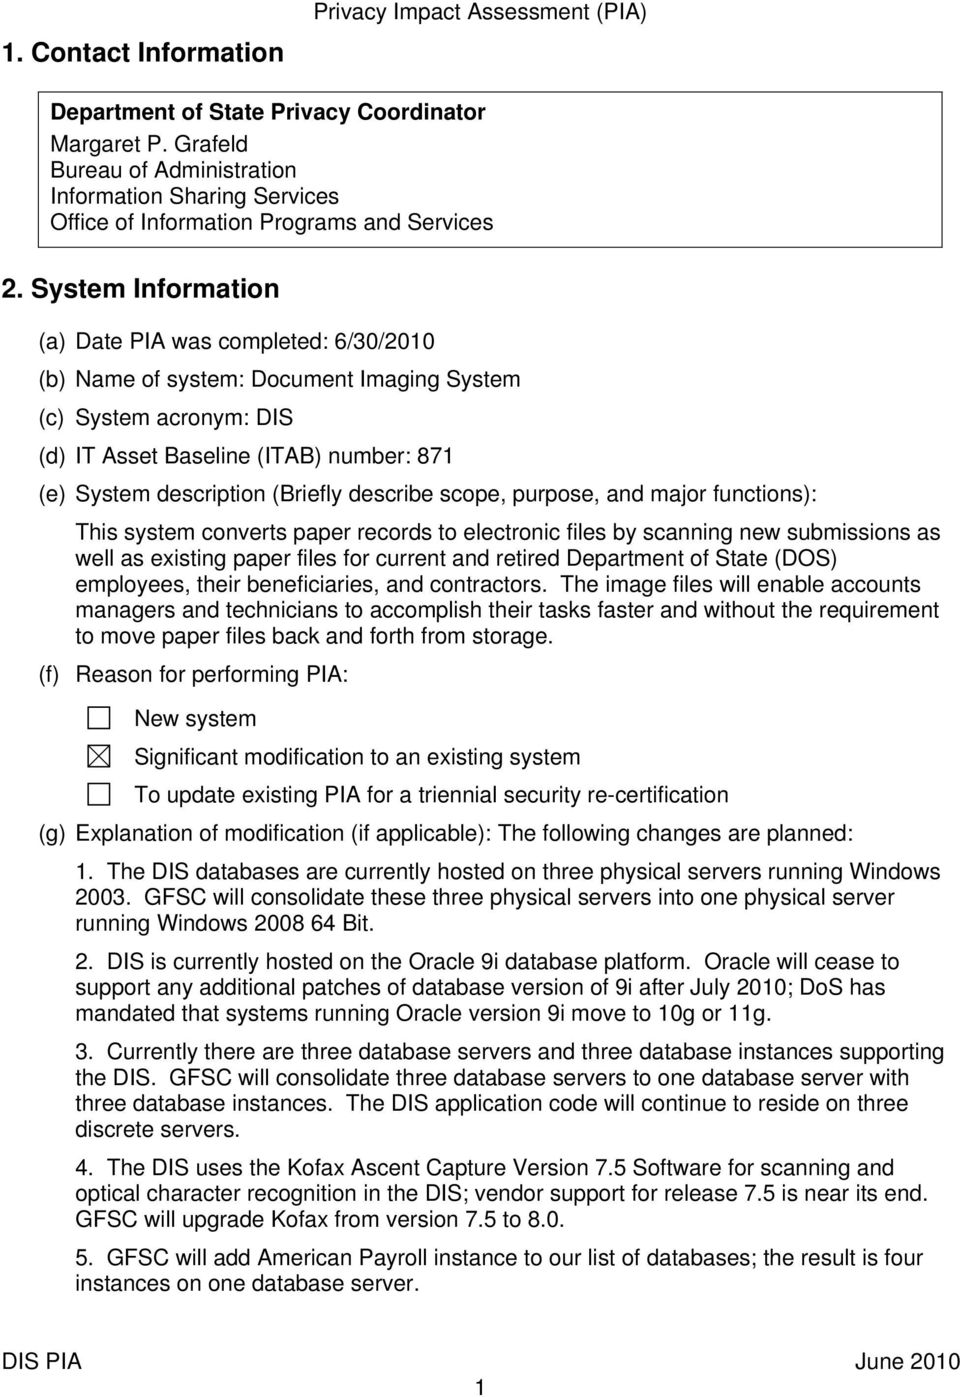 System Information (a) Date PIA was completed: 6/30/2010 (b) Name of system: Document Imaging System (c) System acronym: DIS (d) IT Asset Baseline (ITAB) number: 871 (e) System description (Briefly